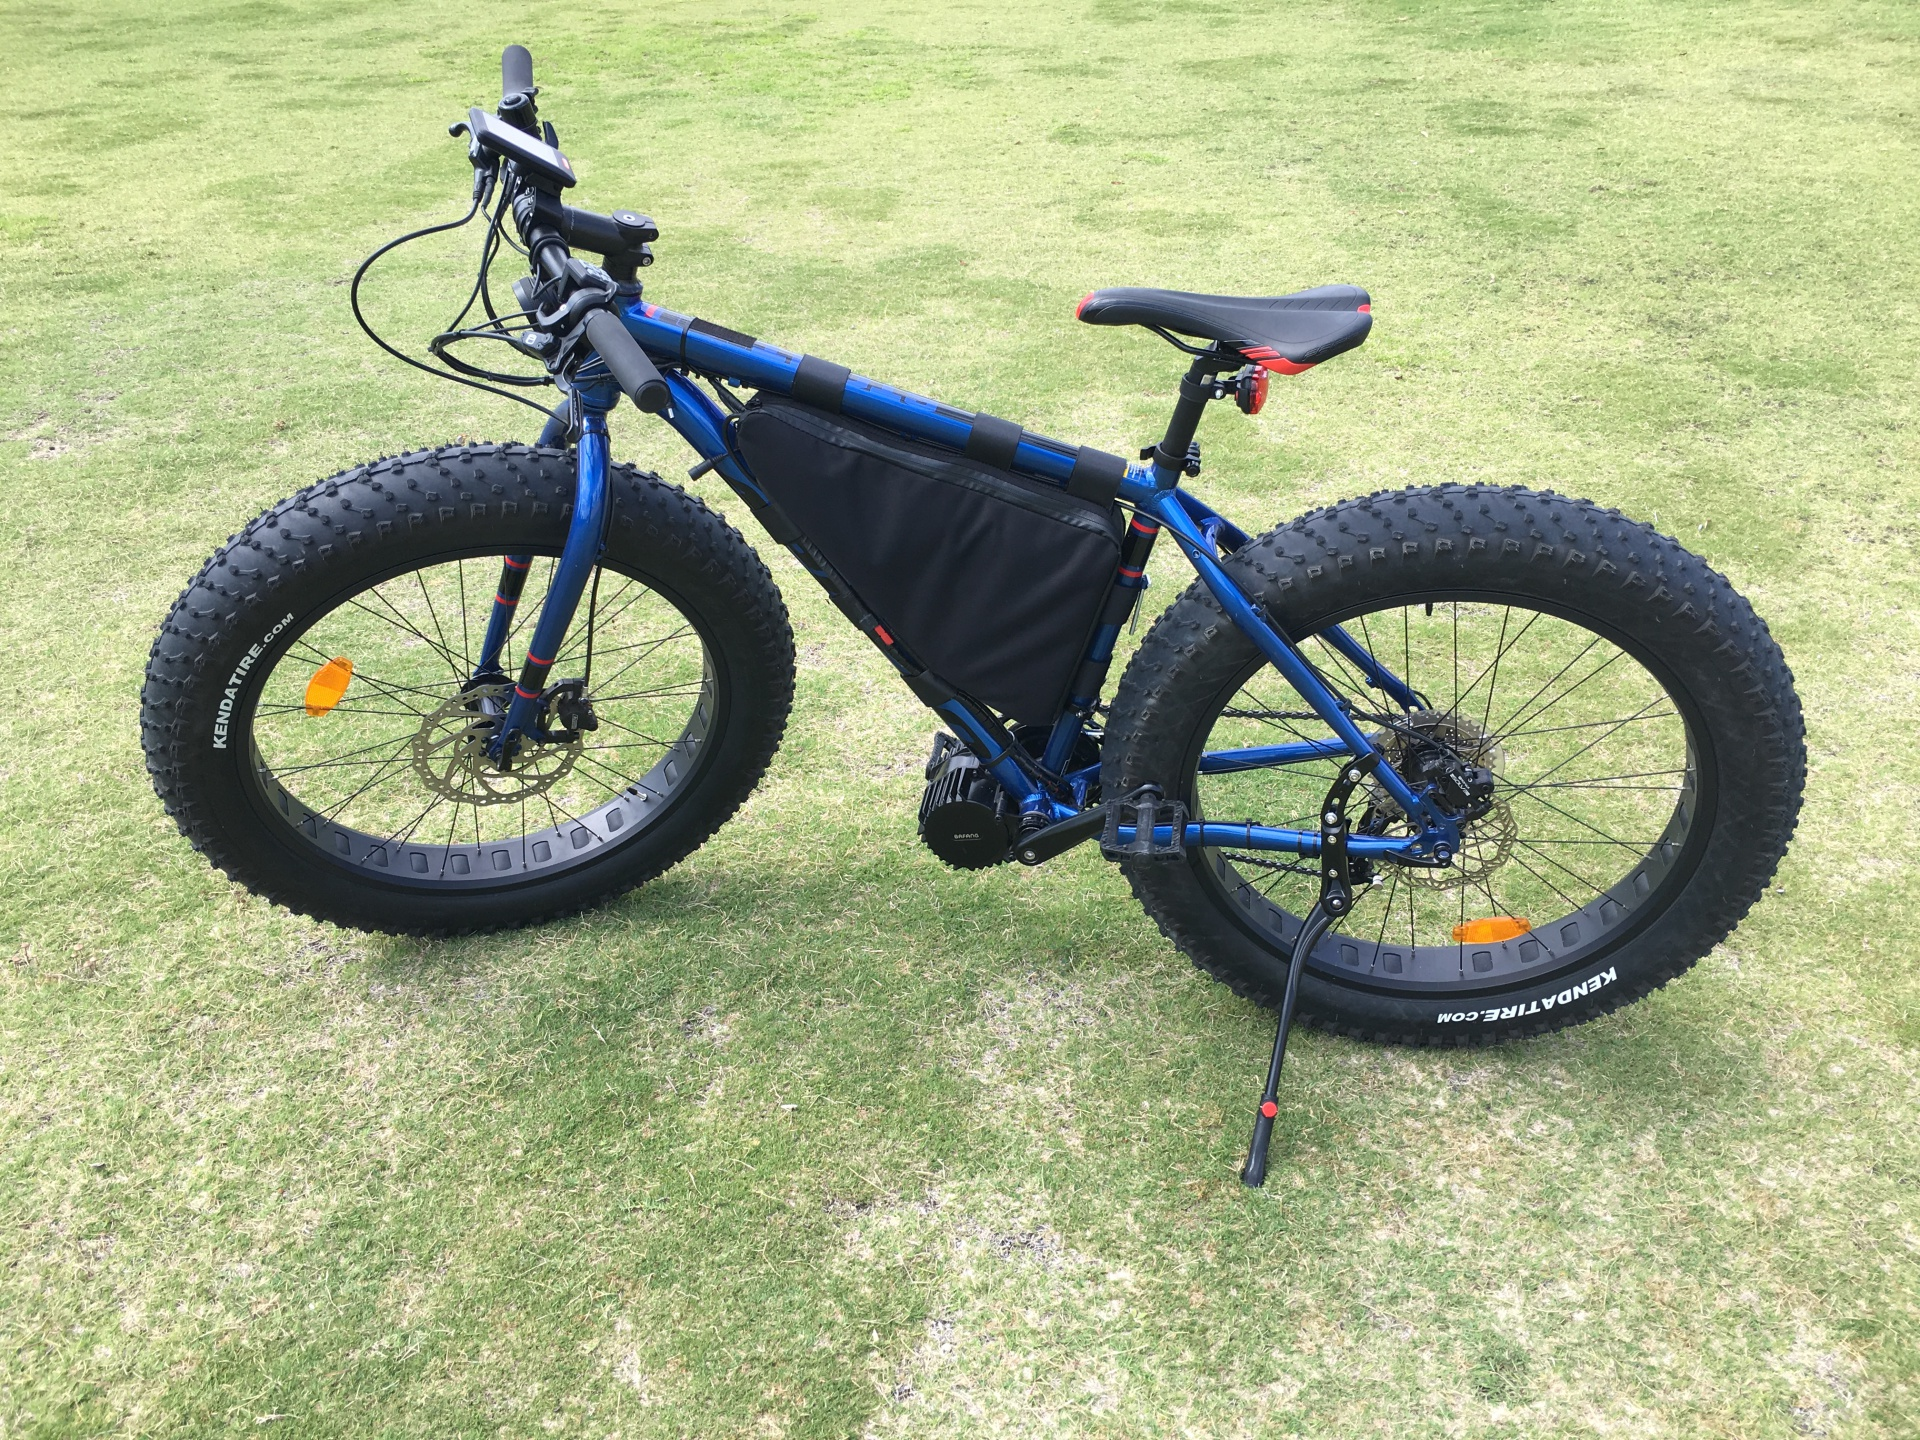 Apollo stout 10 electric bike